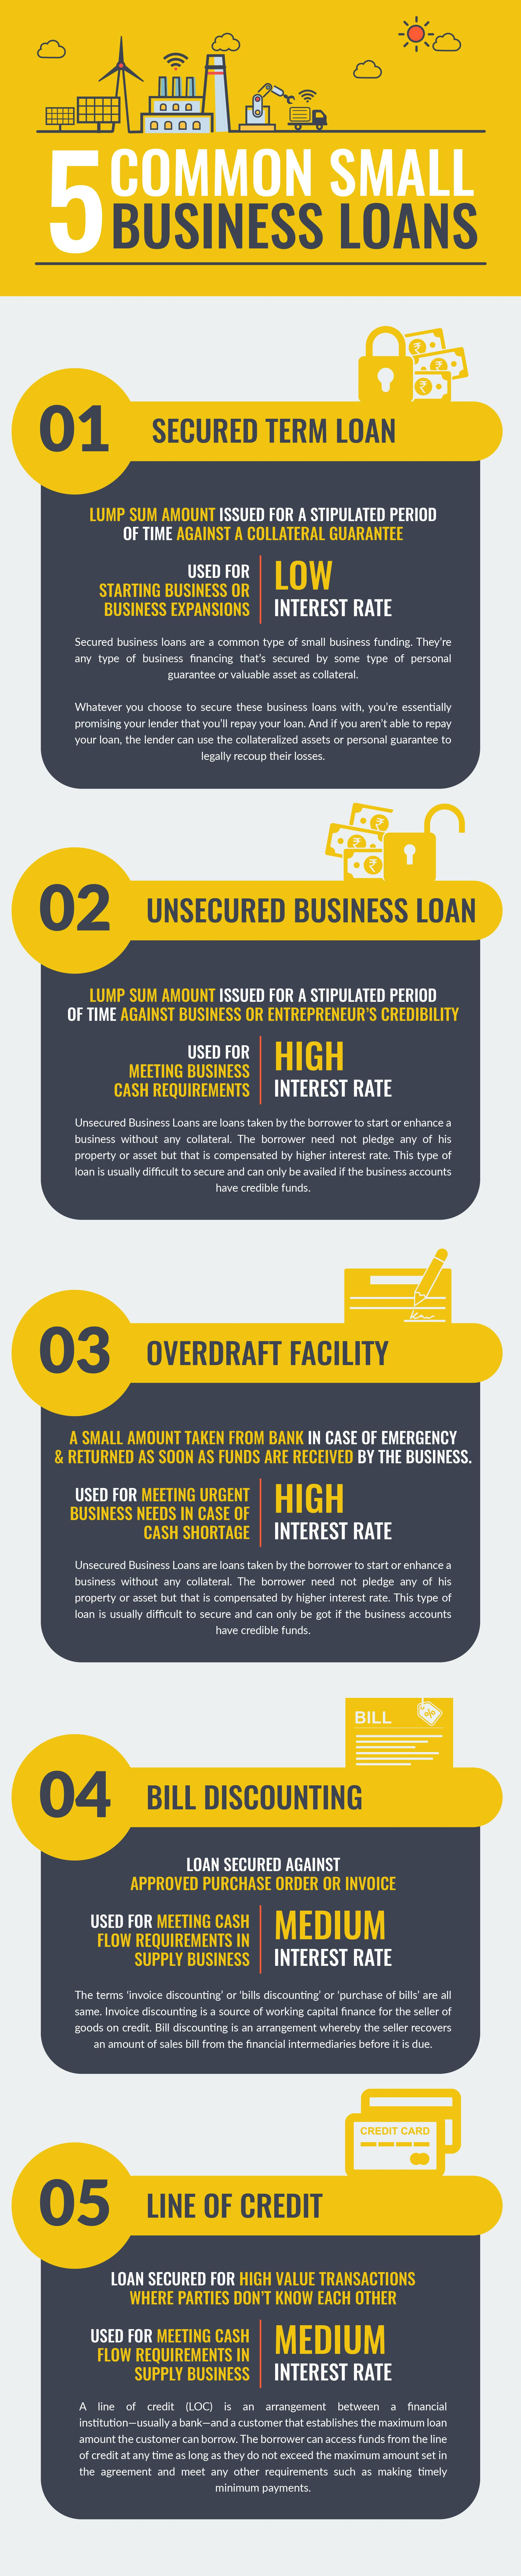 Types of Small Business Loan Infographic